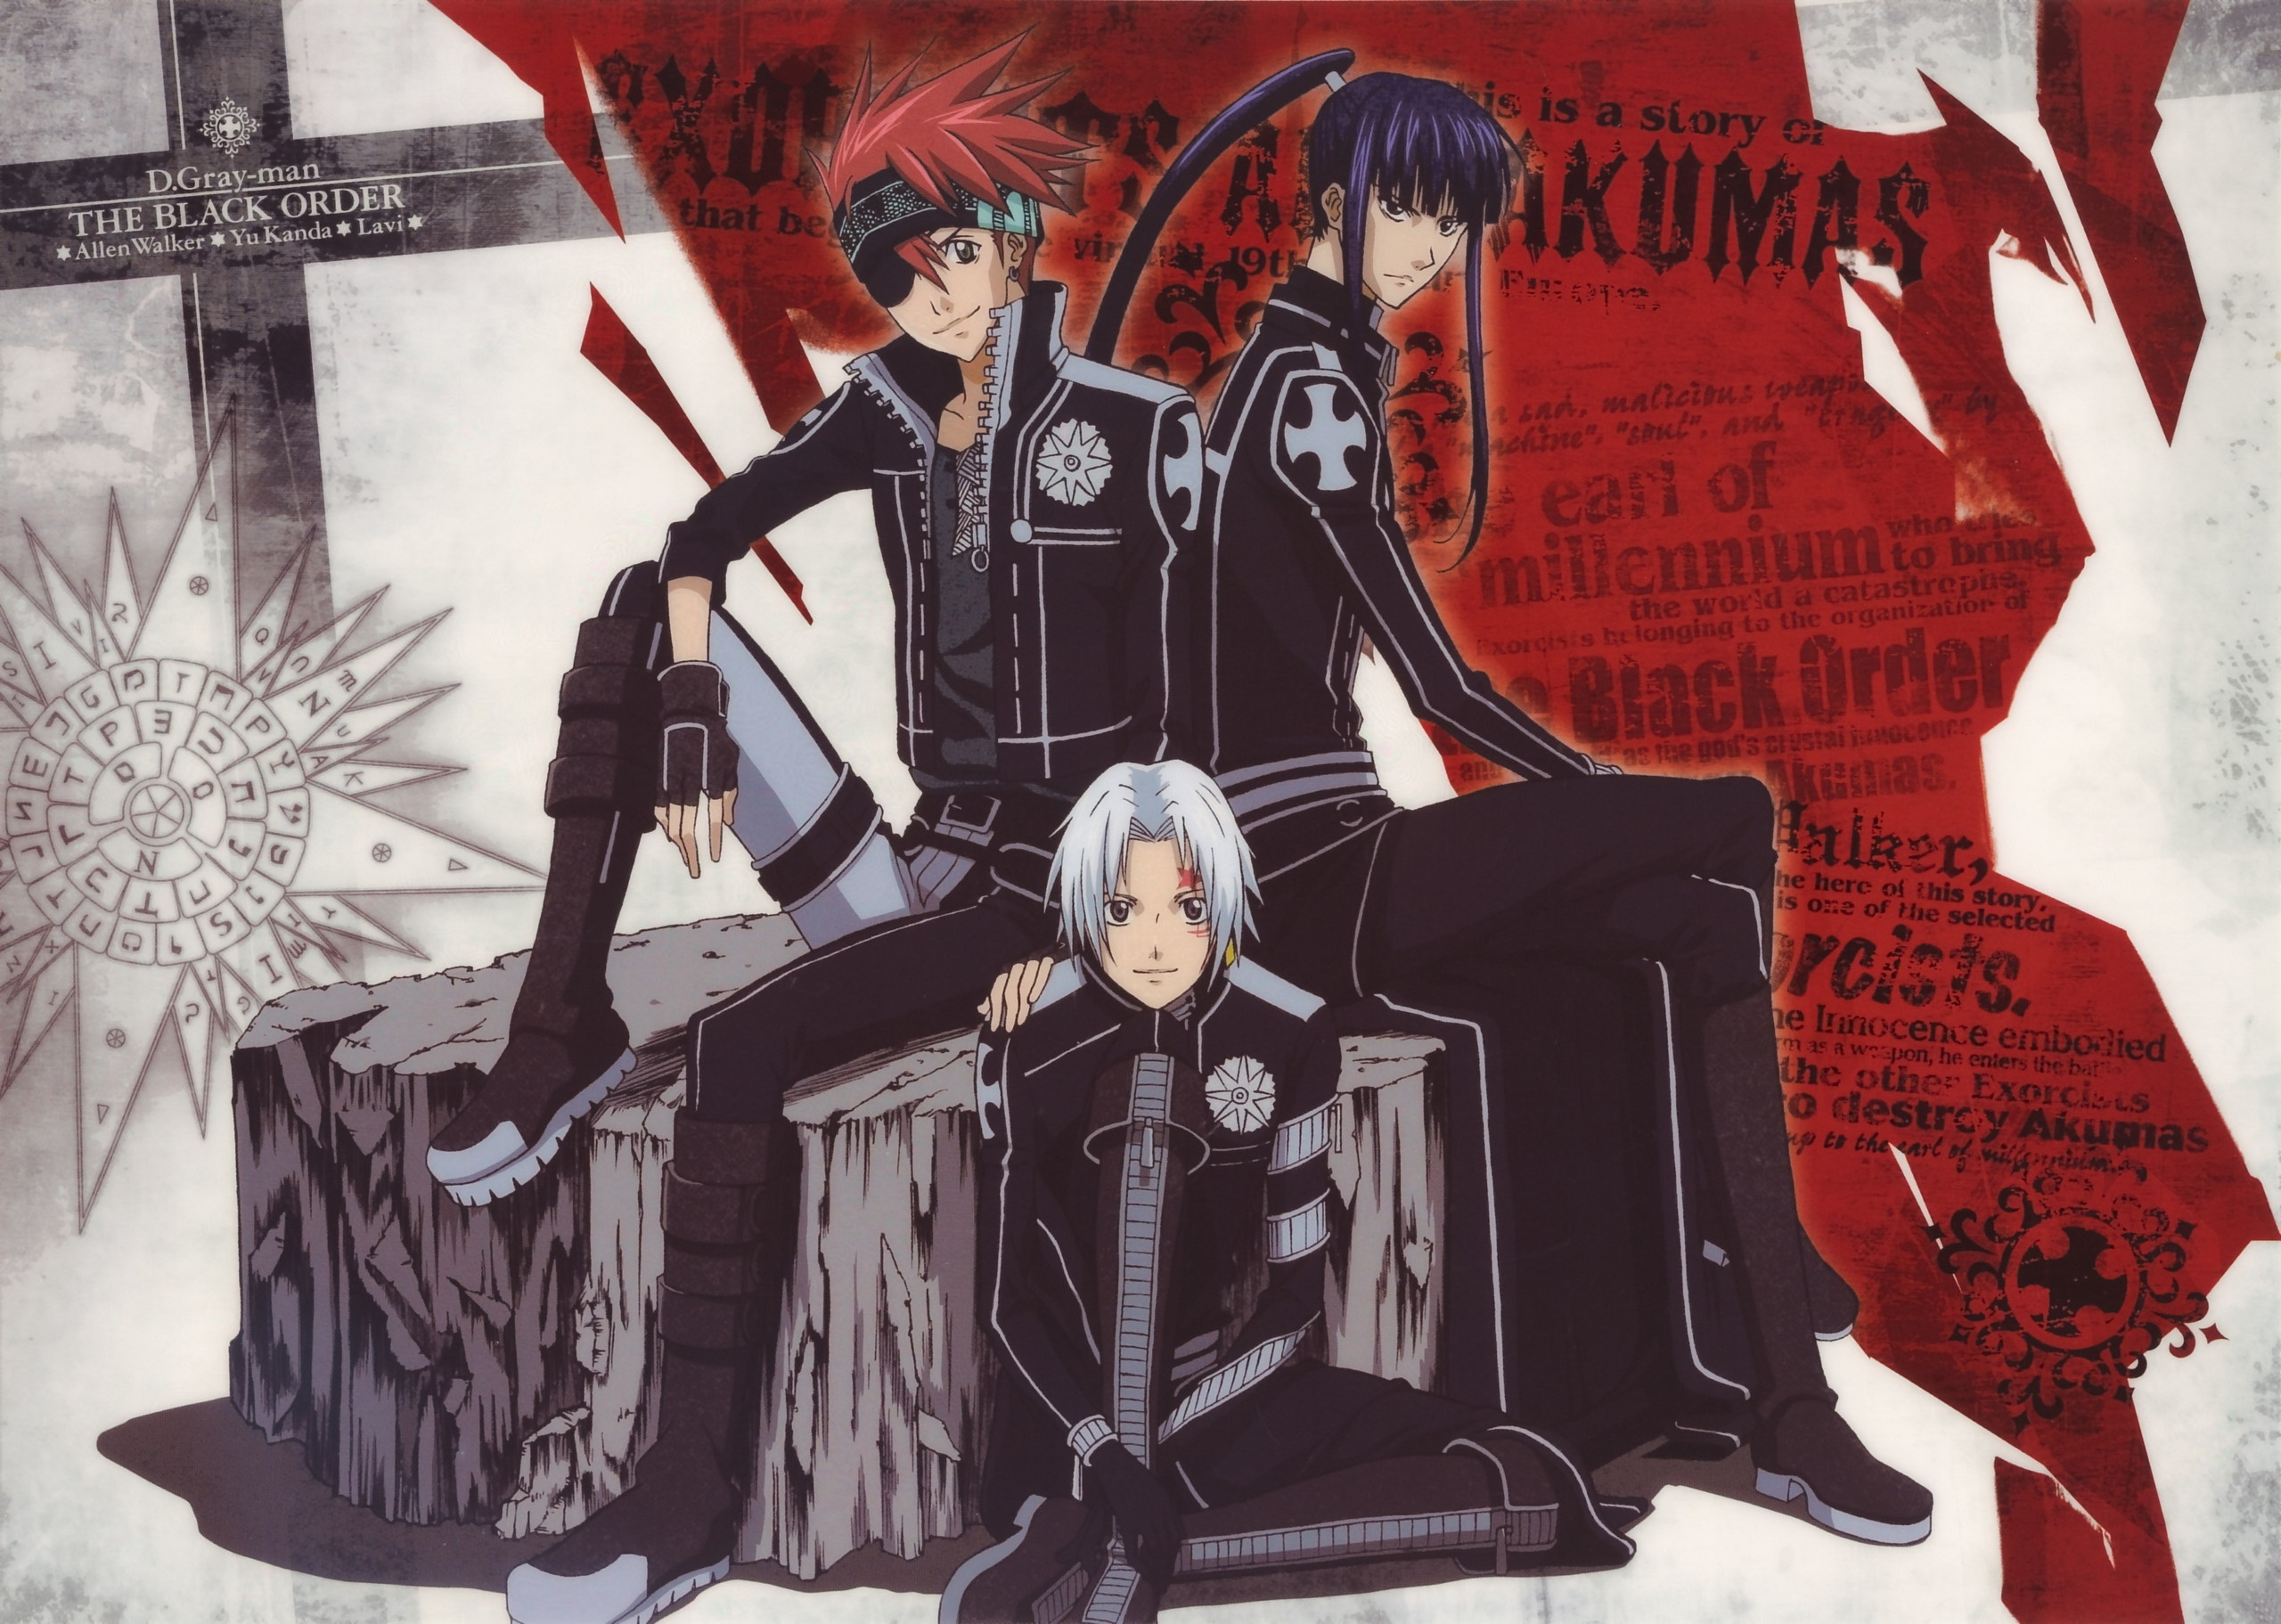 D gray man d gray man photo 12796278 fanpop - D gray man images ...